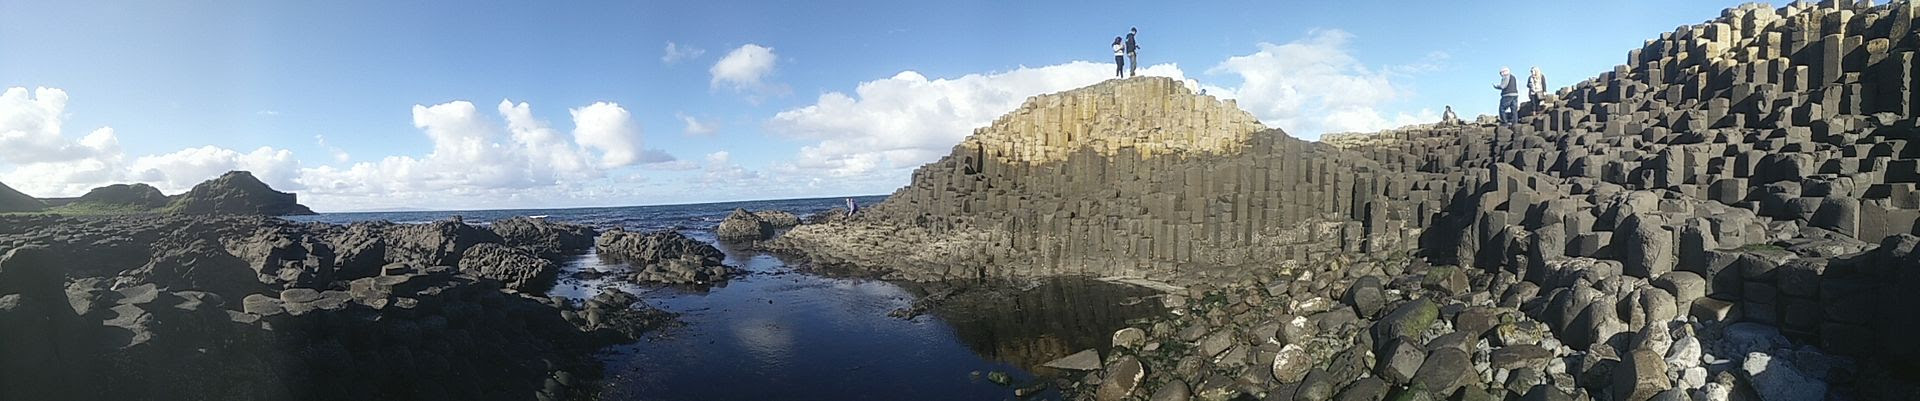 Giant's Causeway, Northern Ireland photo PANO_20151012_133926_zpsfiwuhayr.jpg